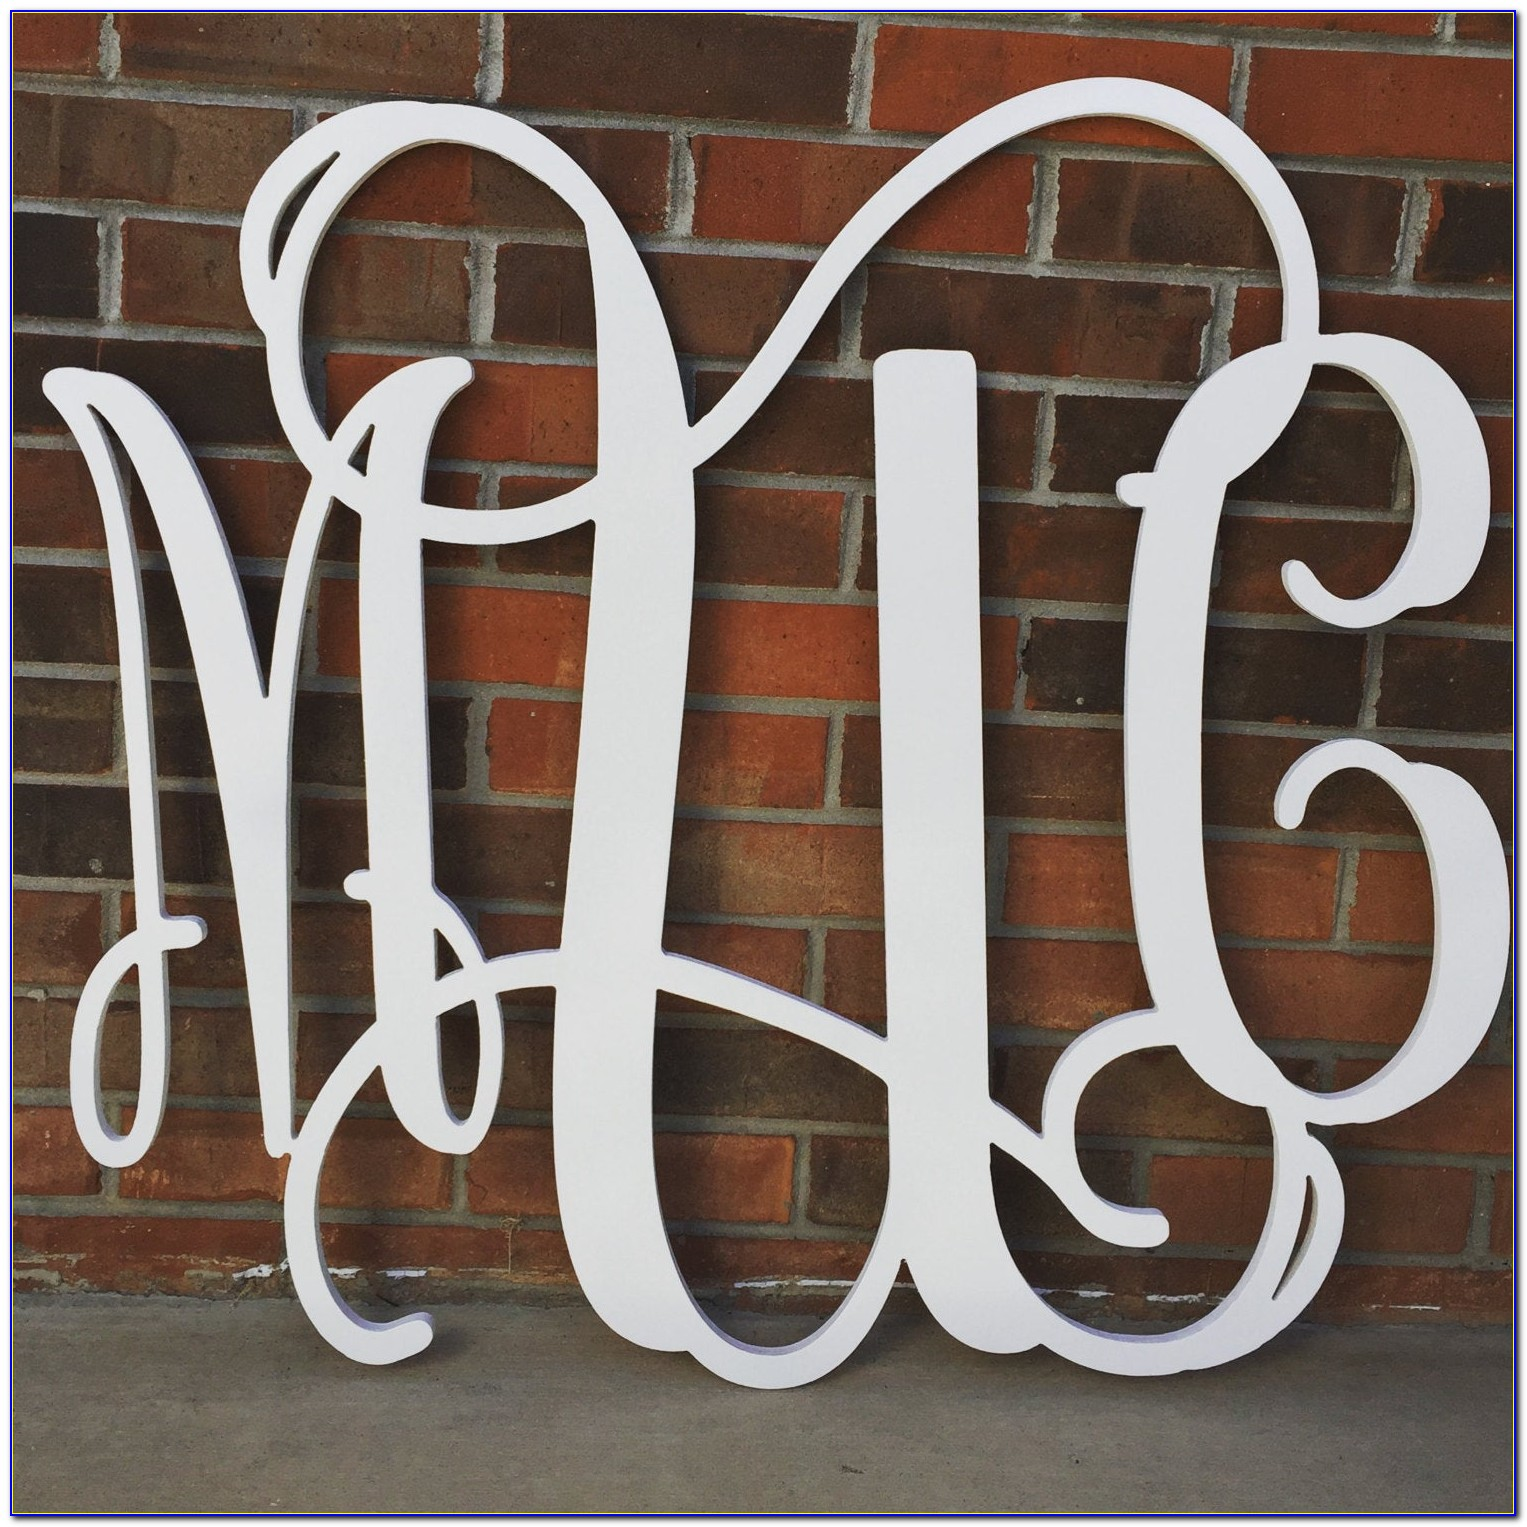 36 Inch Wood Letters